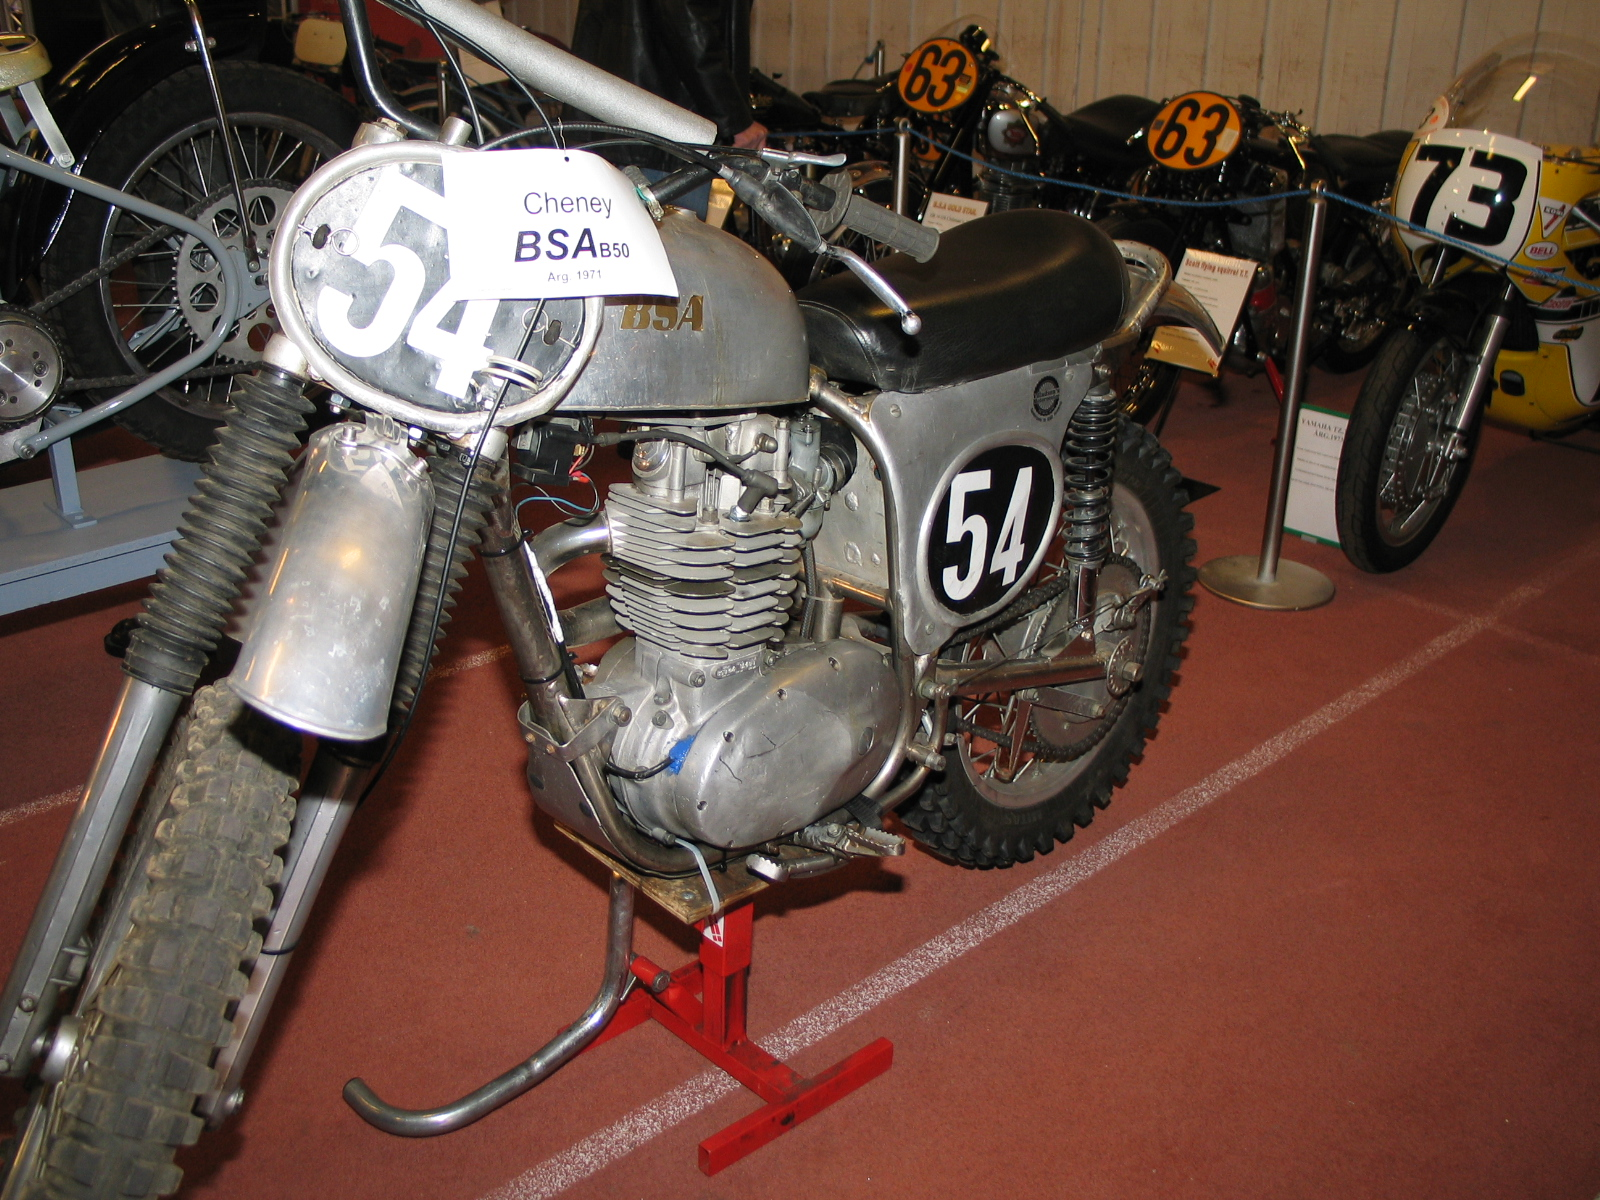 Åge Nickelsens Cheney BSA B50.